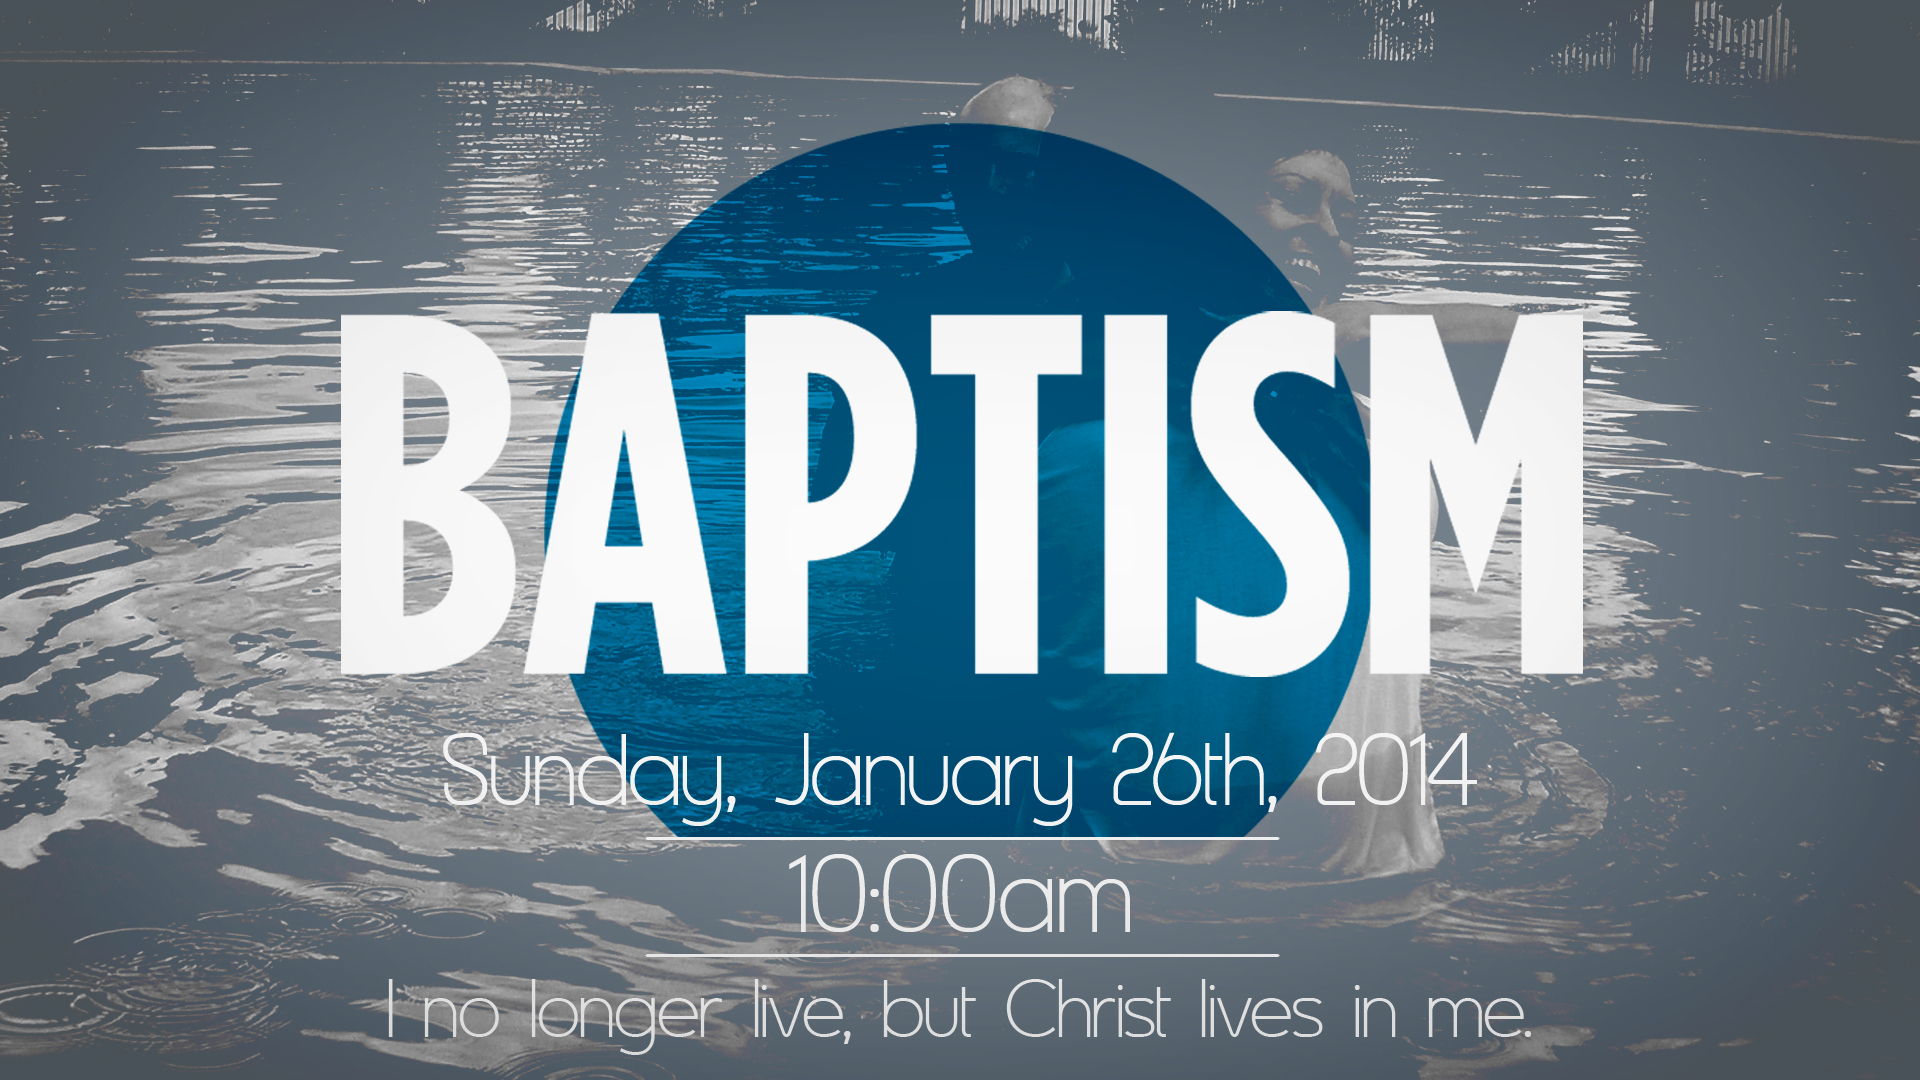 Baptisms on January 26th!